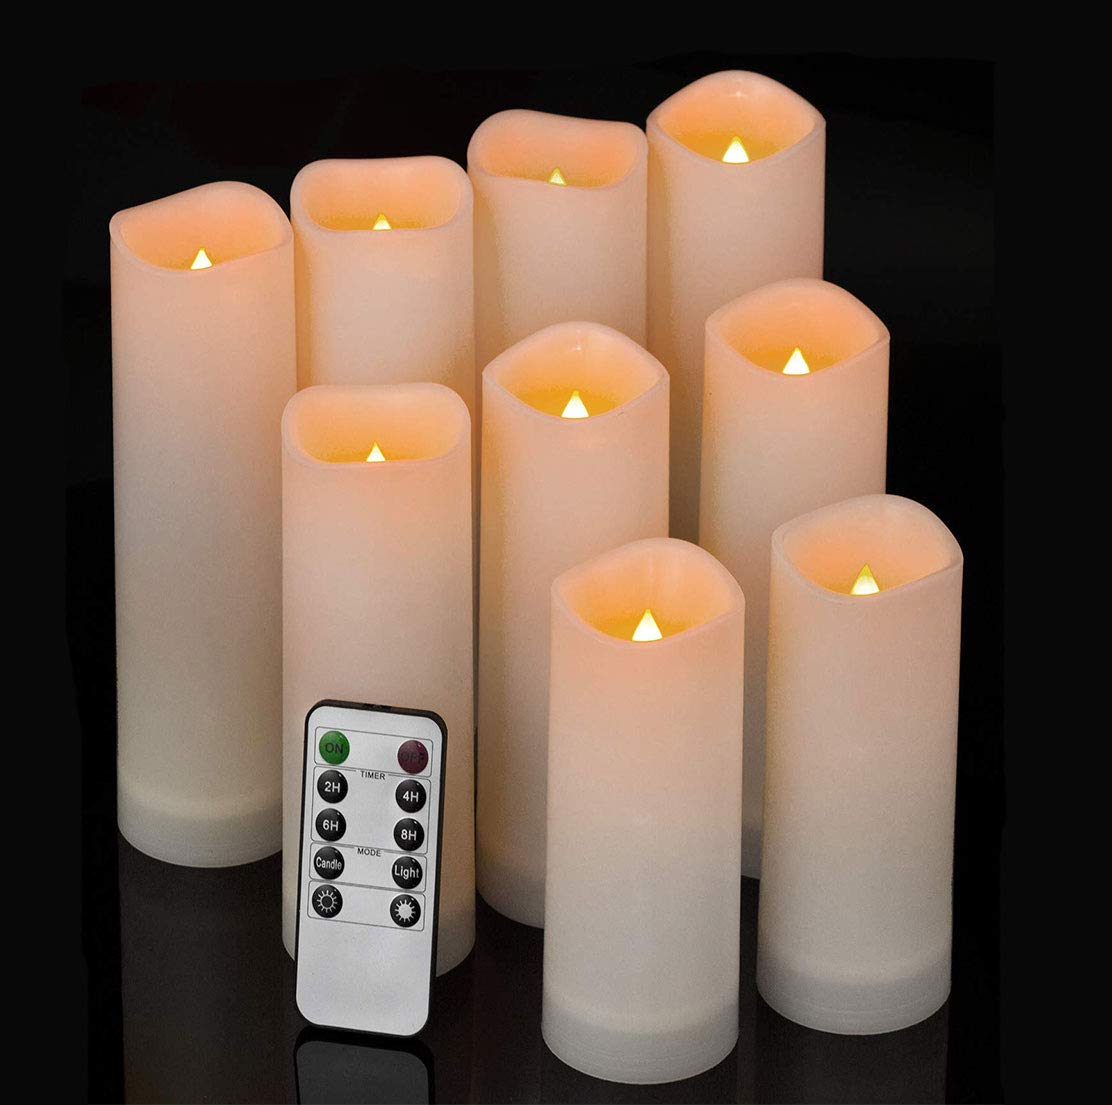 Comenzar Flameless Candles Waterproof Outdoor Indoor led Candles Set of 9 (H 5″ 6″ 7″ x D 2.1″) Battery Operated Candles with Remote Timer(Made of Plastic)